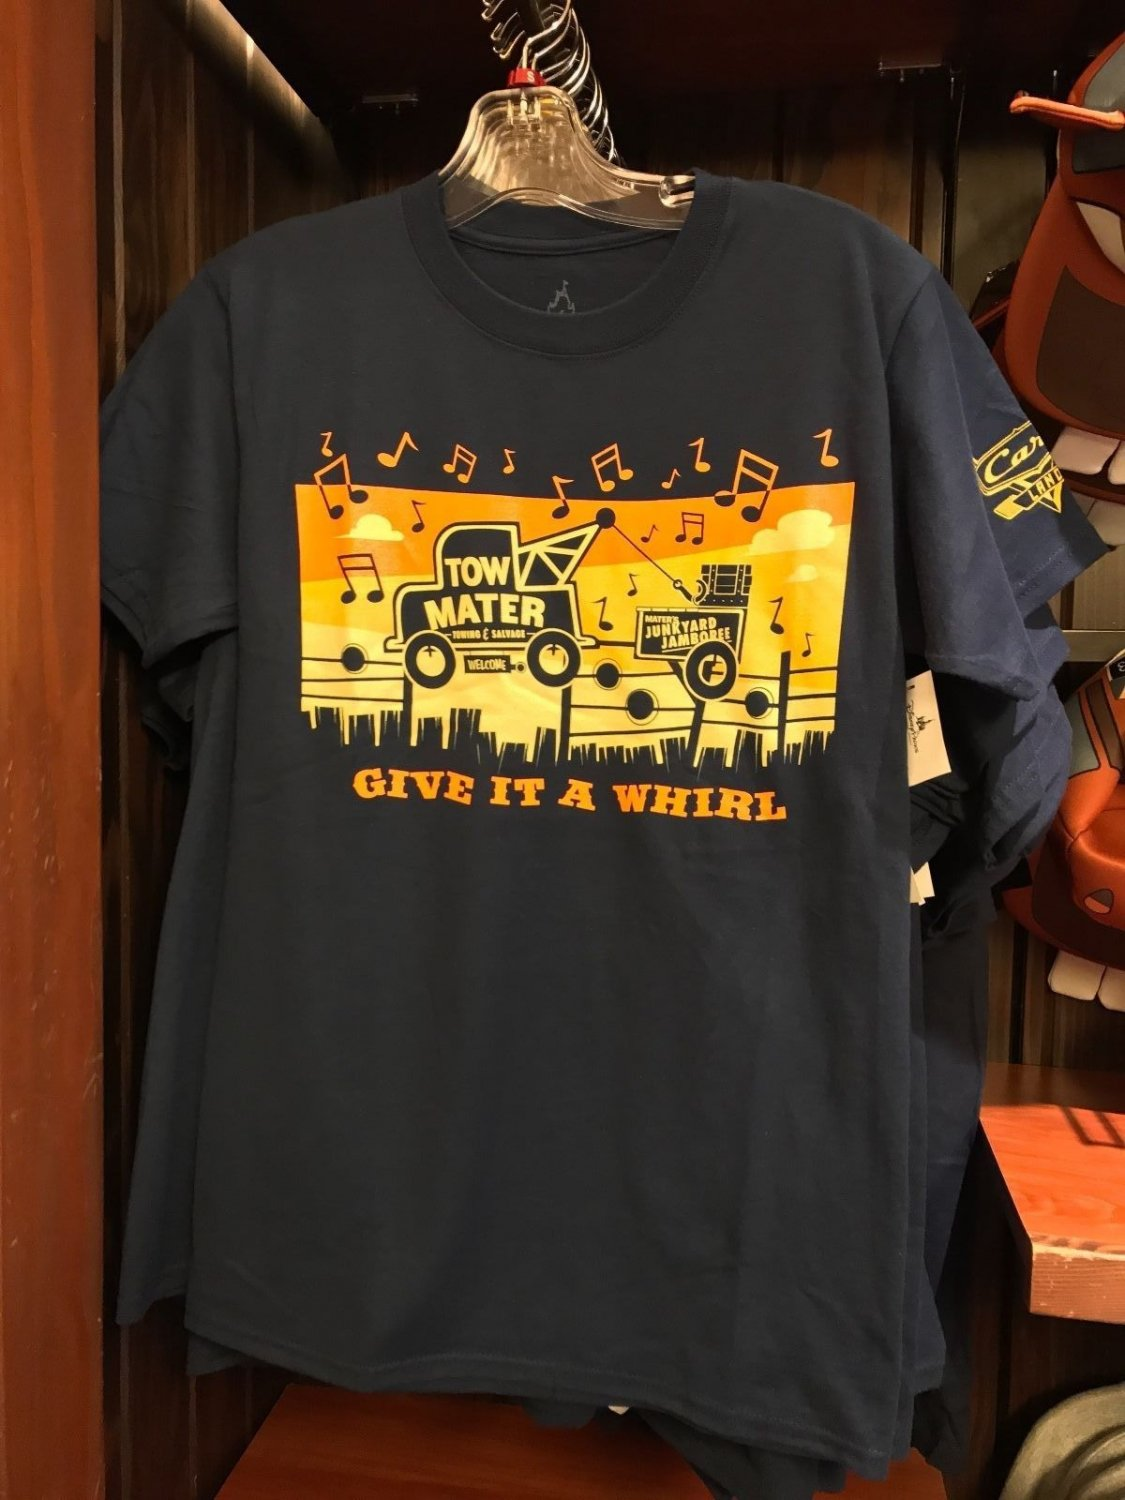 DISNEY PARKS DCA CARS LAND TOW MATERS GIVE IT A WHIRL RADIATOR SPRINGS SHIRT NEW